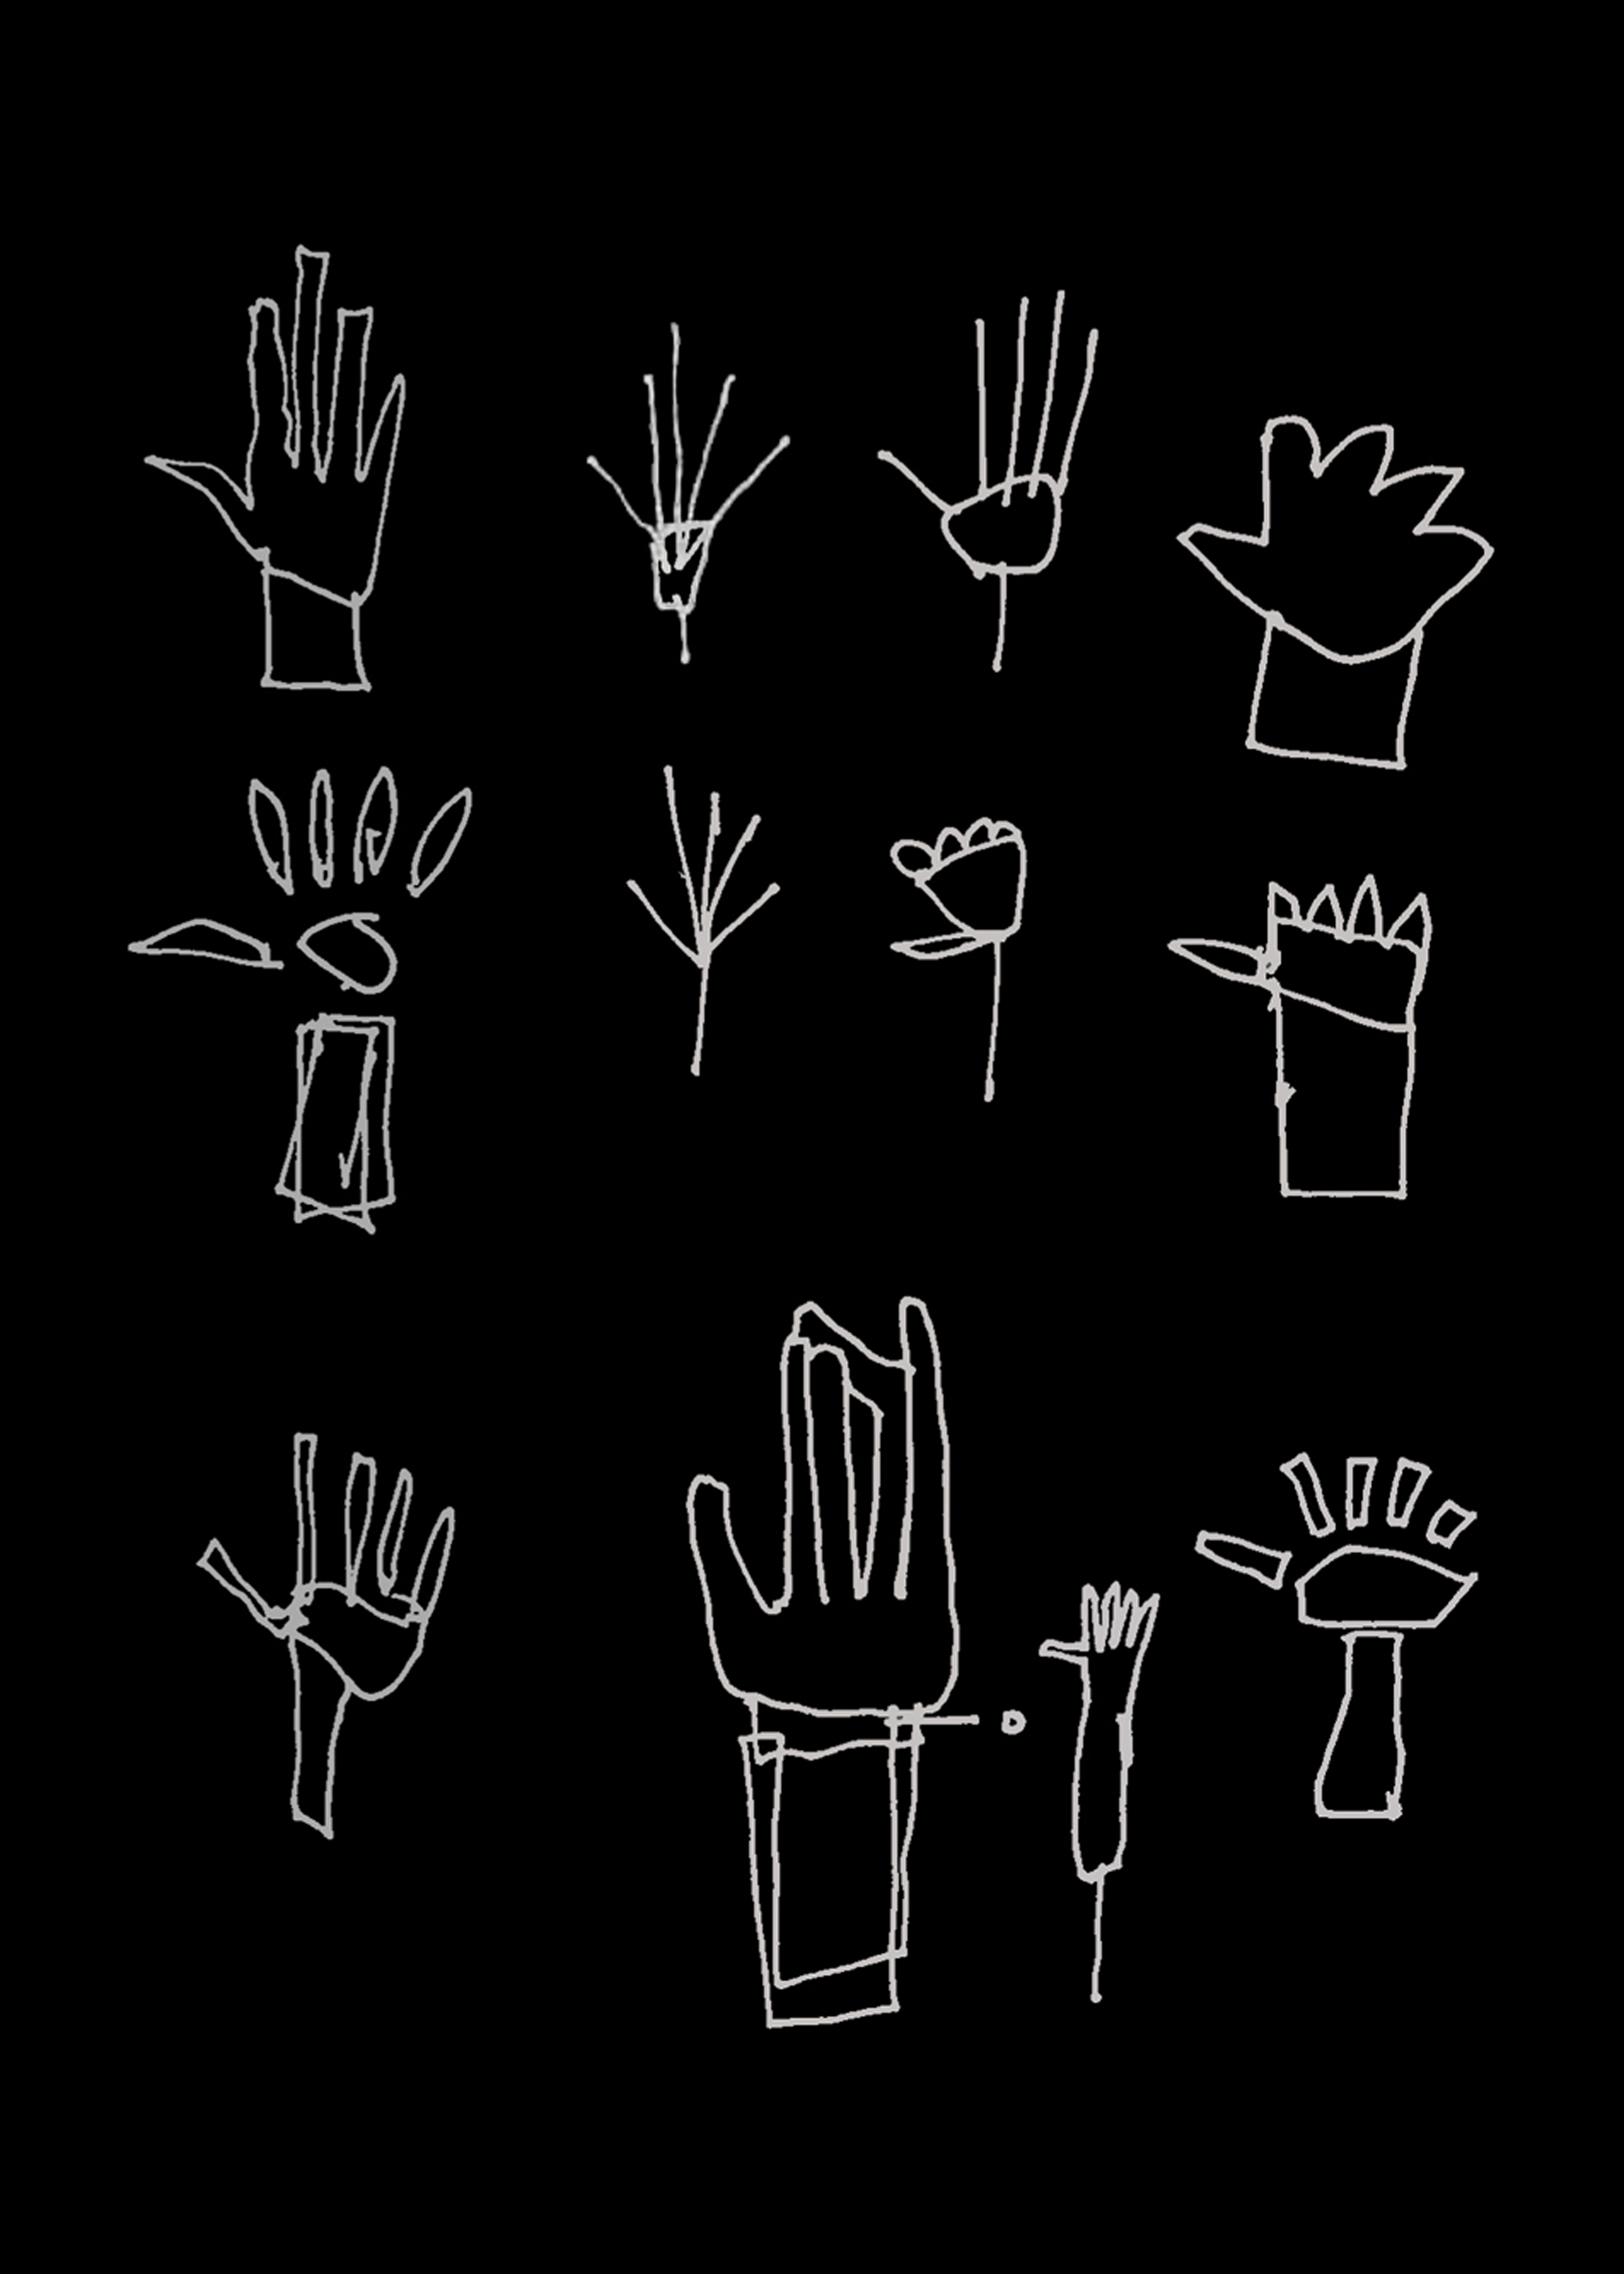 Hand drawings INVERT